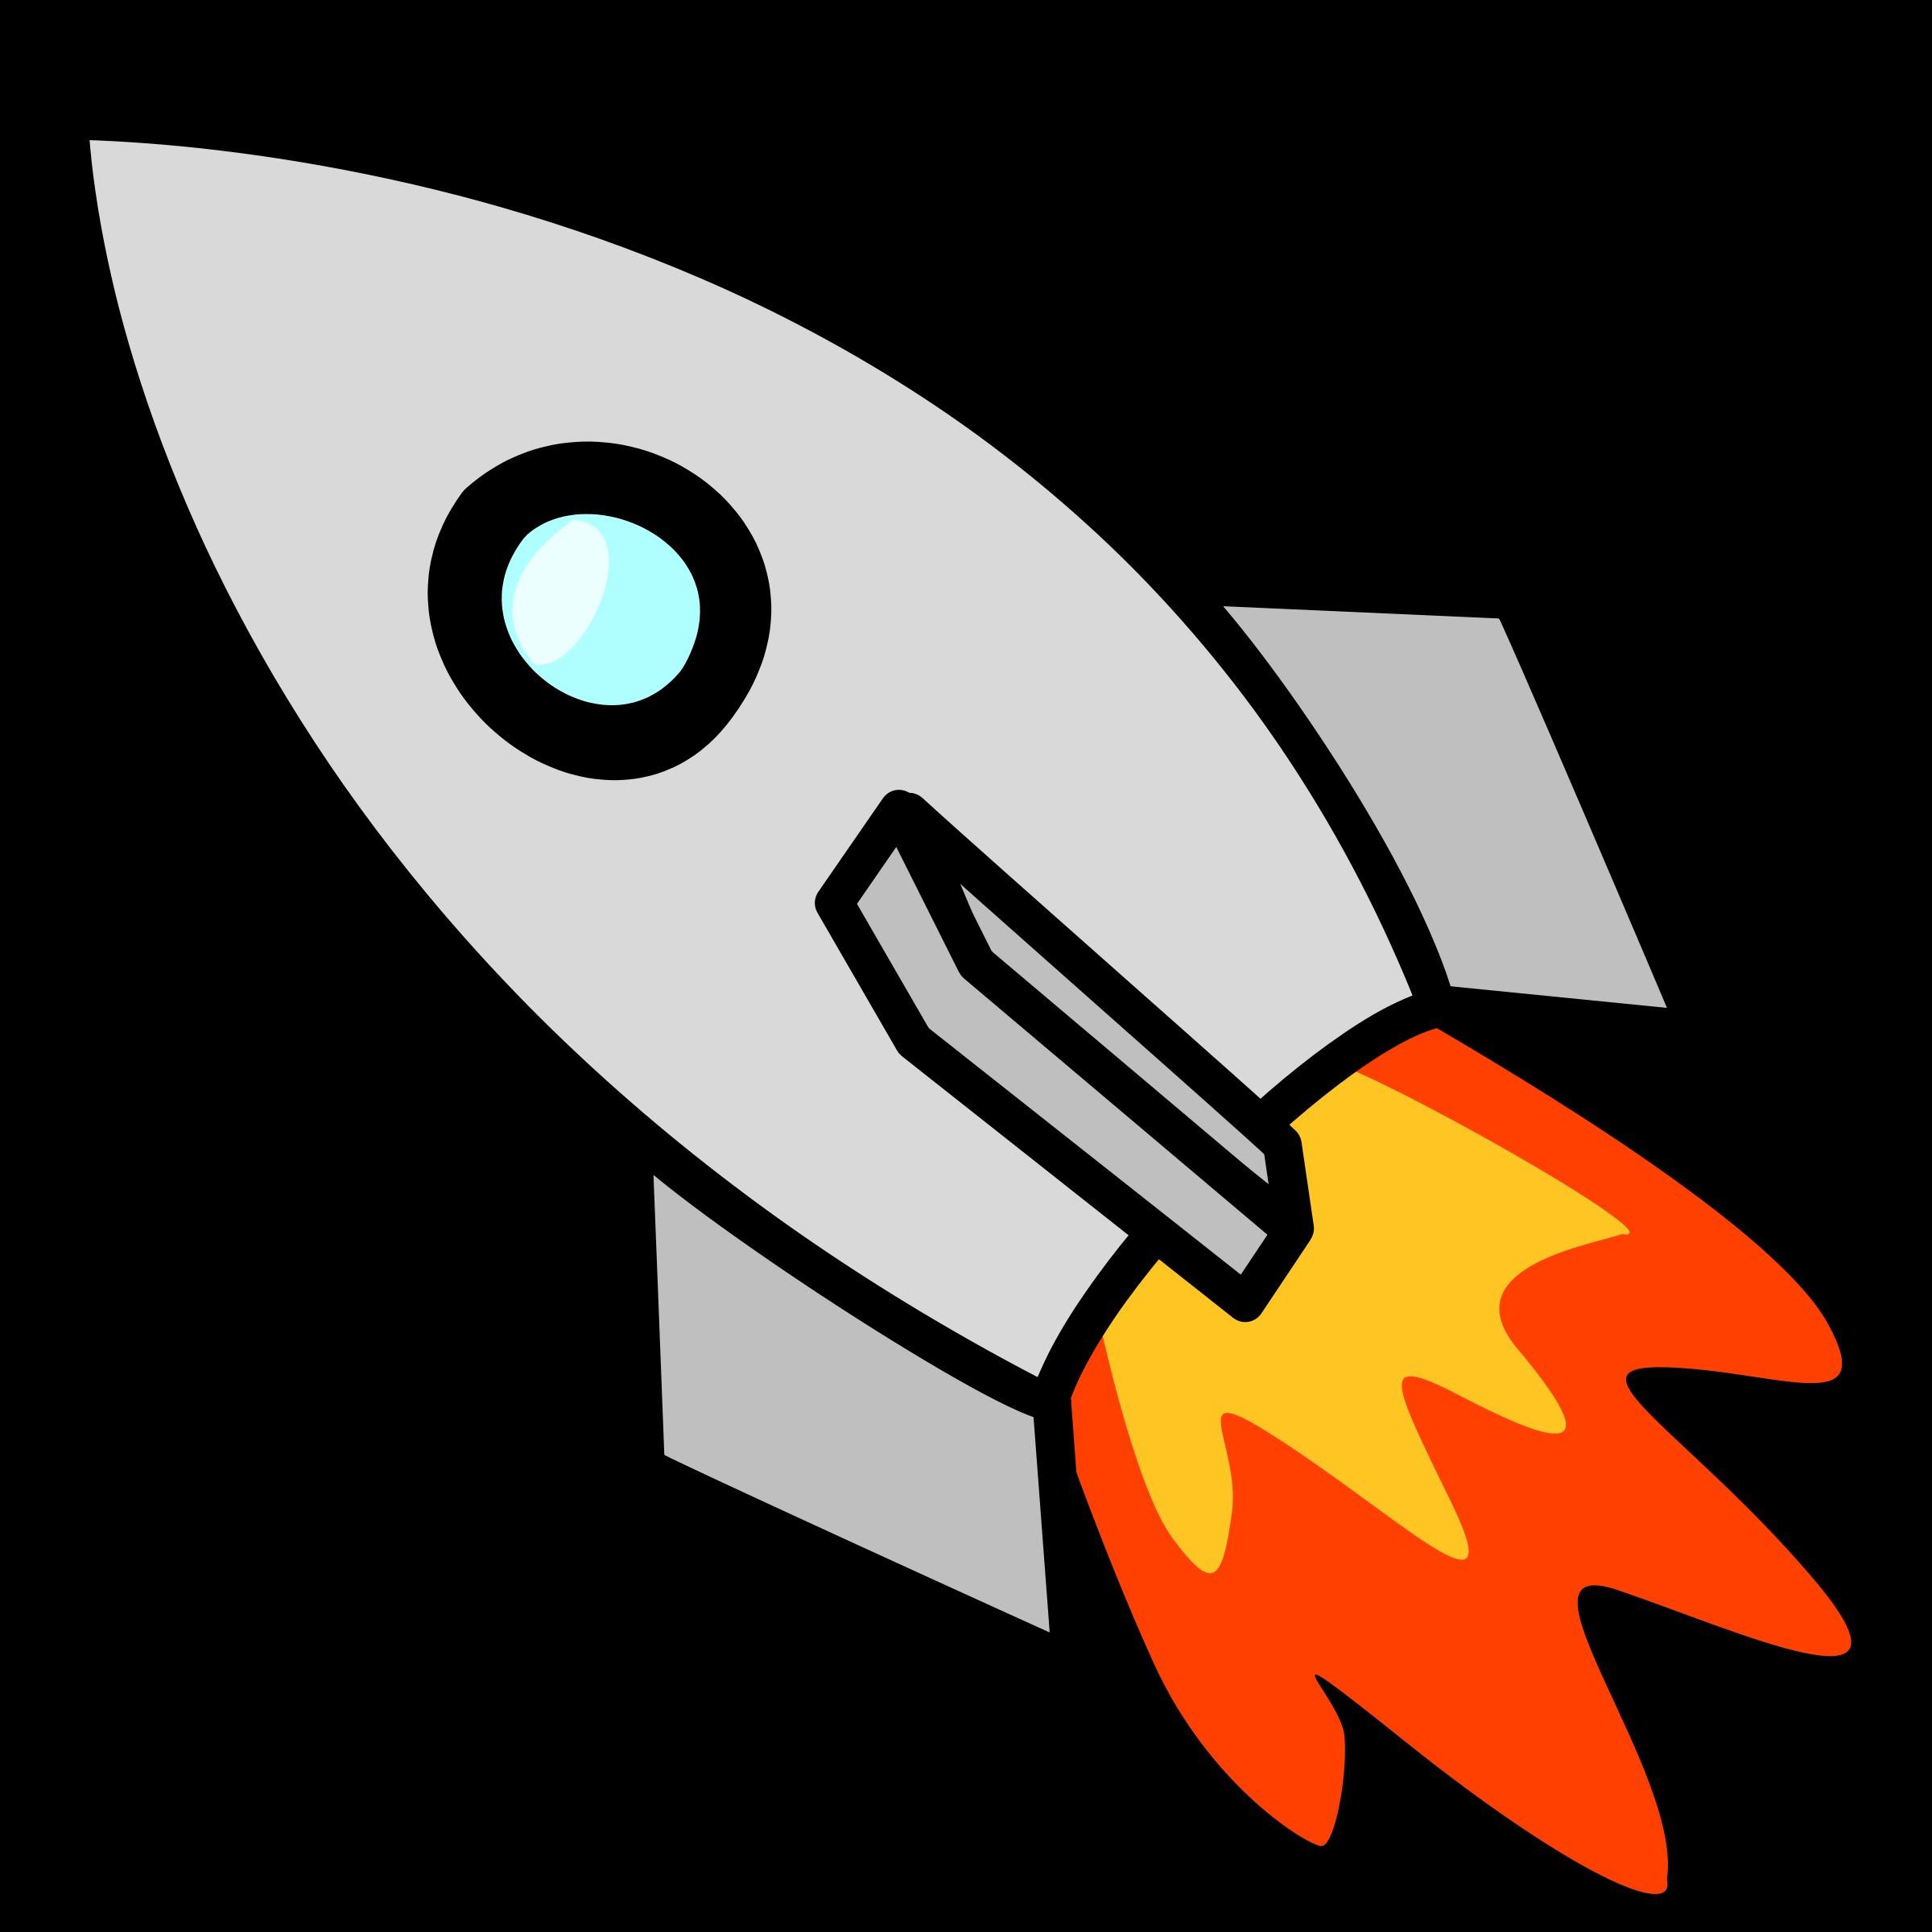 2400x2400 How To Draw Rocket On Ms Paint